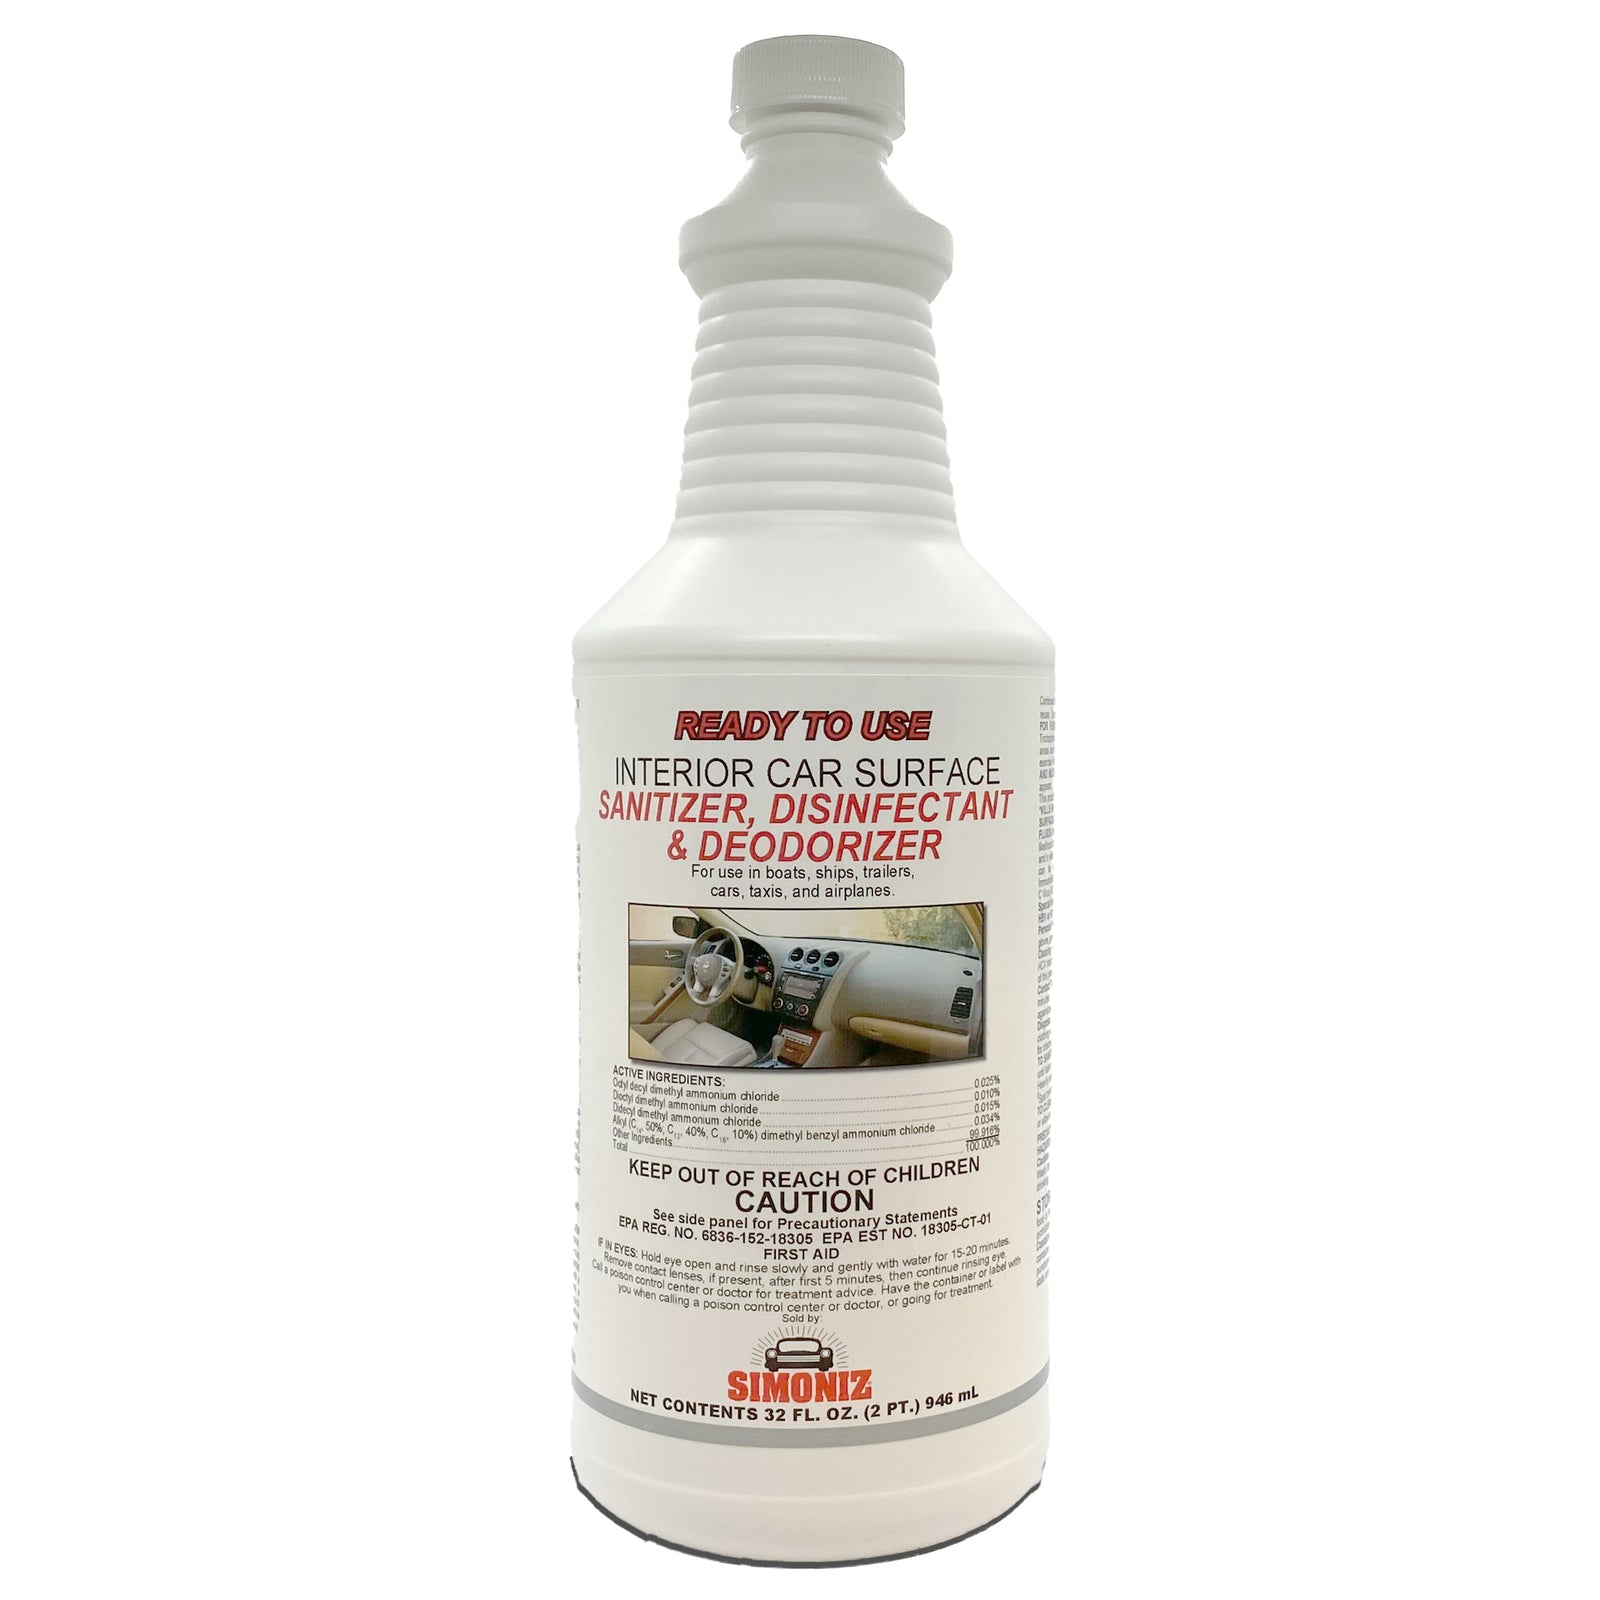 RTU Interior Sanitizer Disinfectant